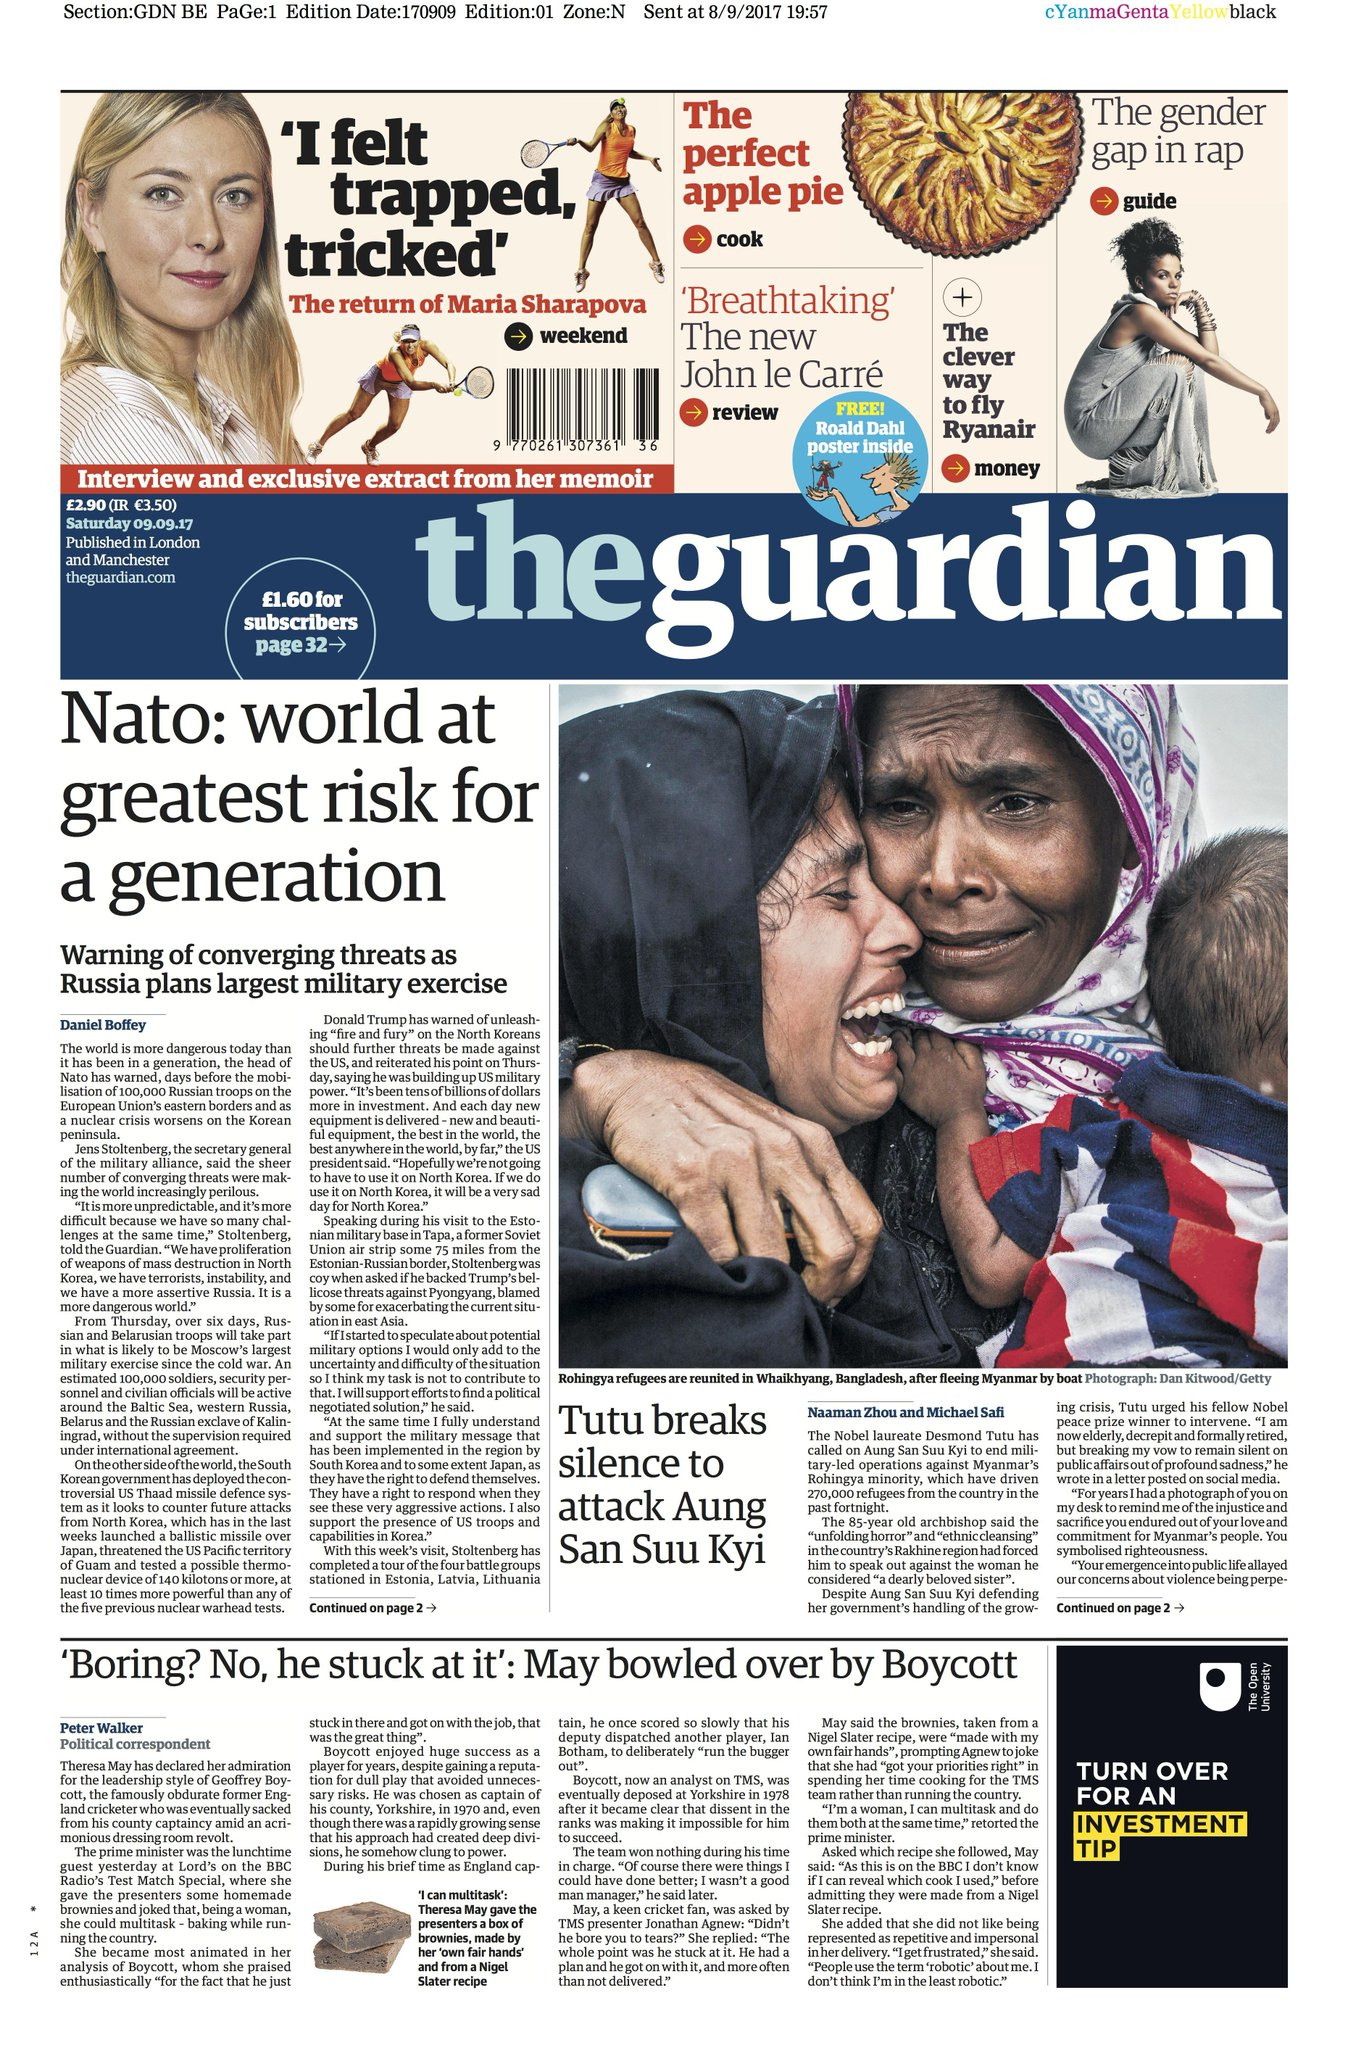 Guardian front page, Saturday 9 September 2017: Nato says world at greatest risk for a generation https://t.co/6tep4nrR2g